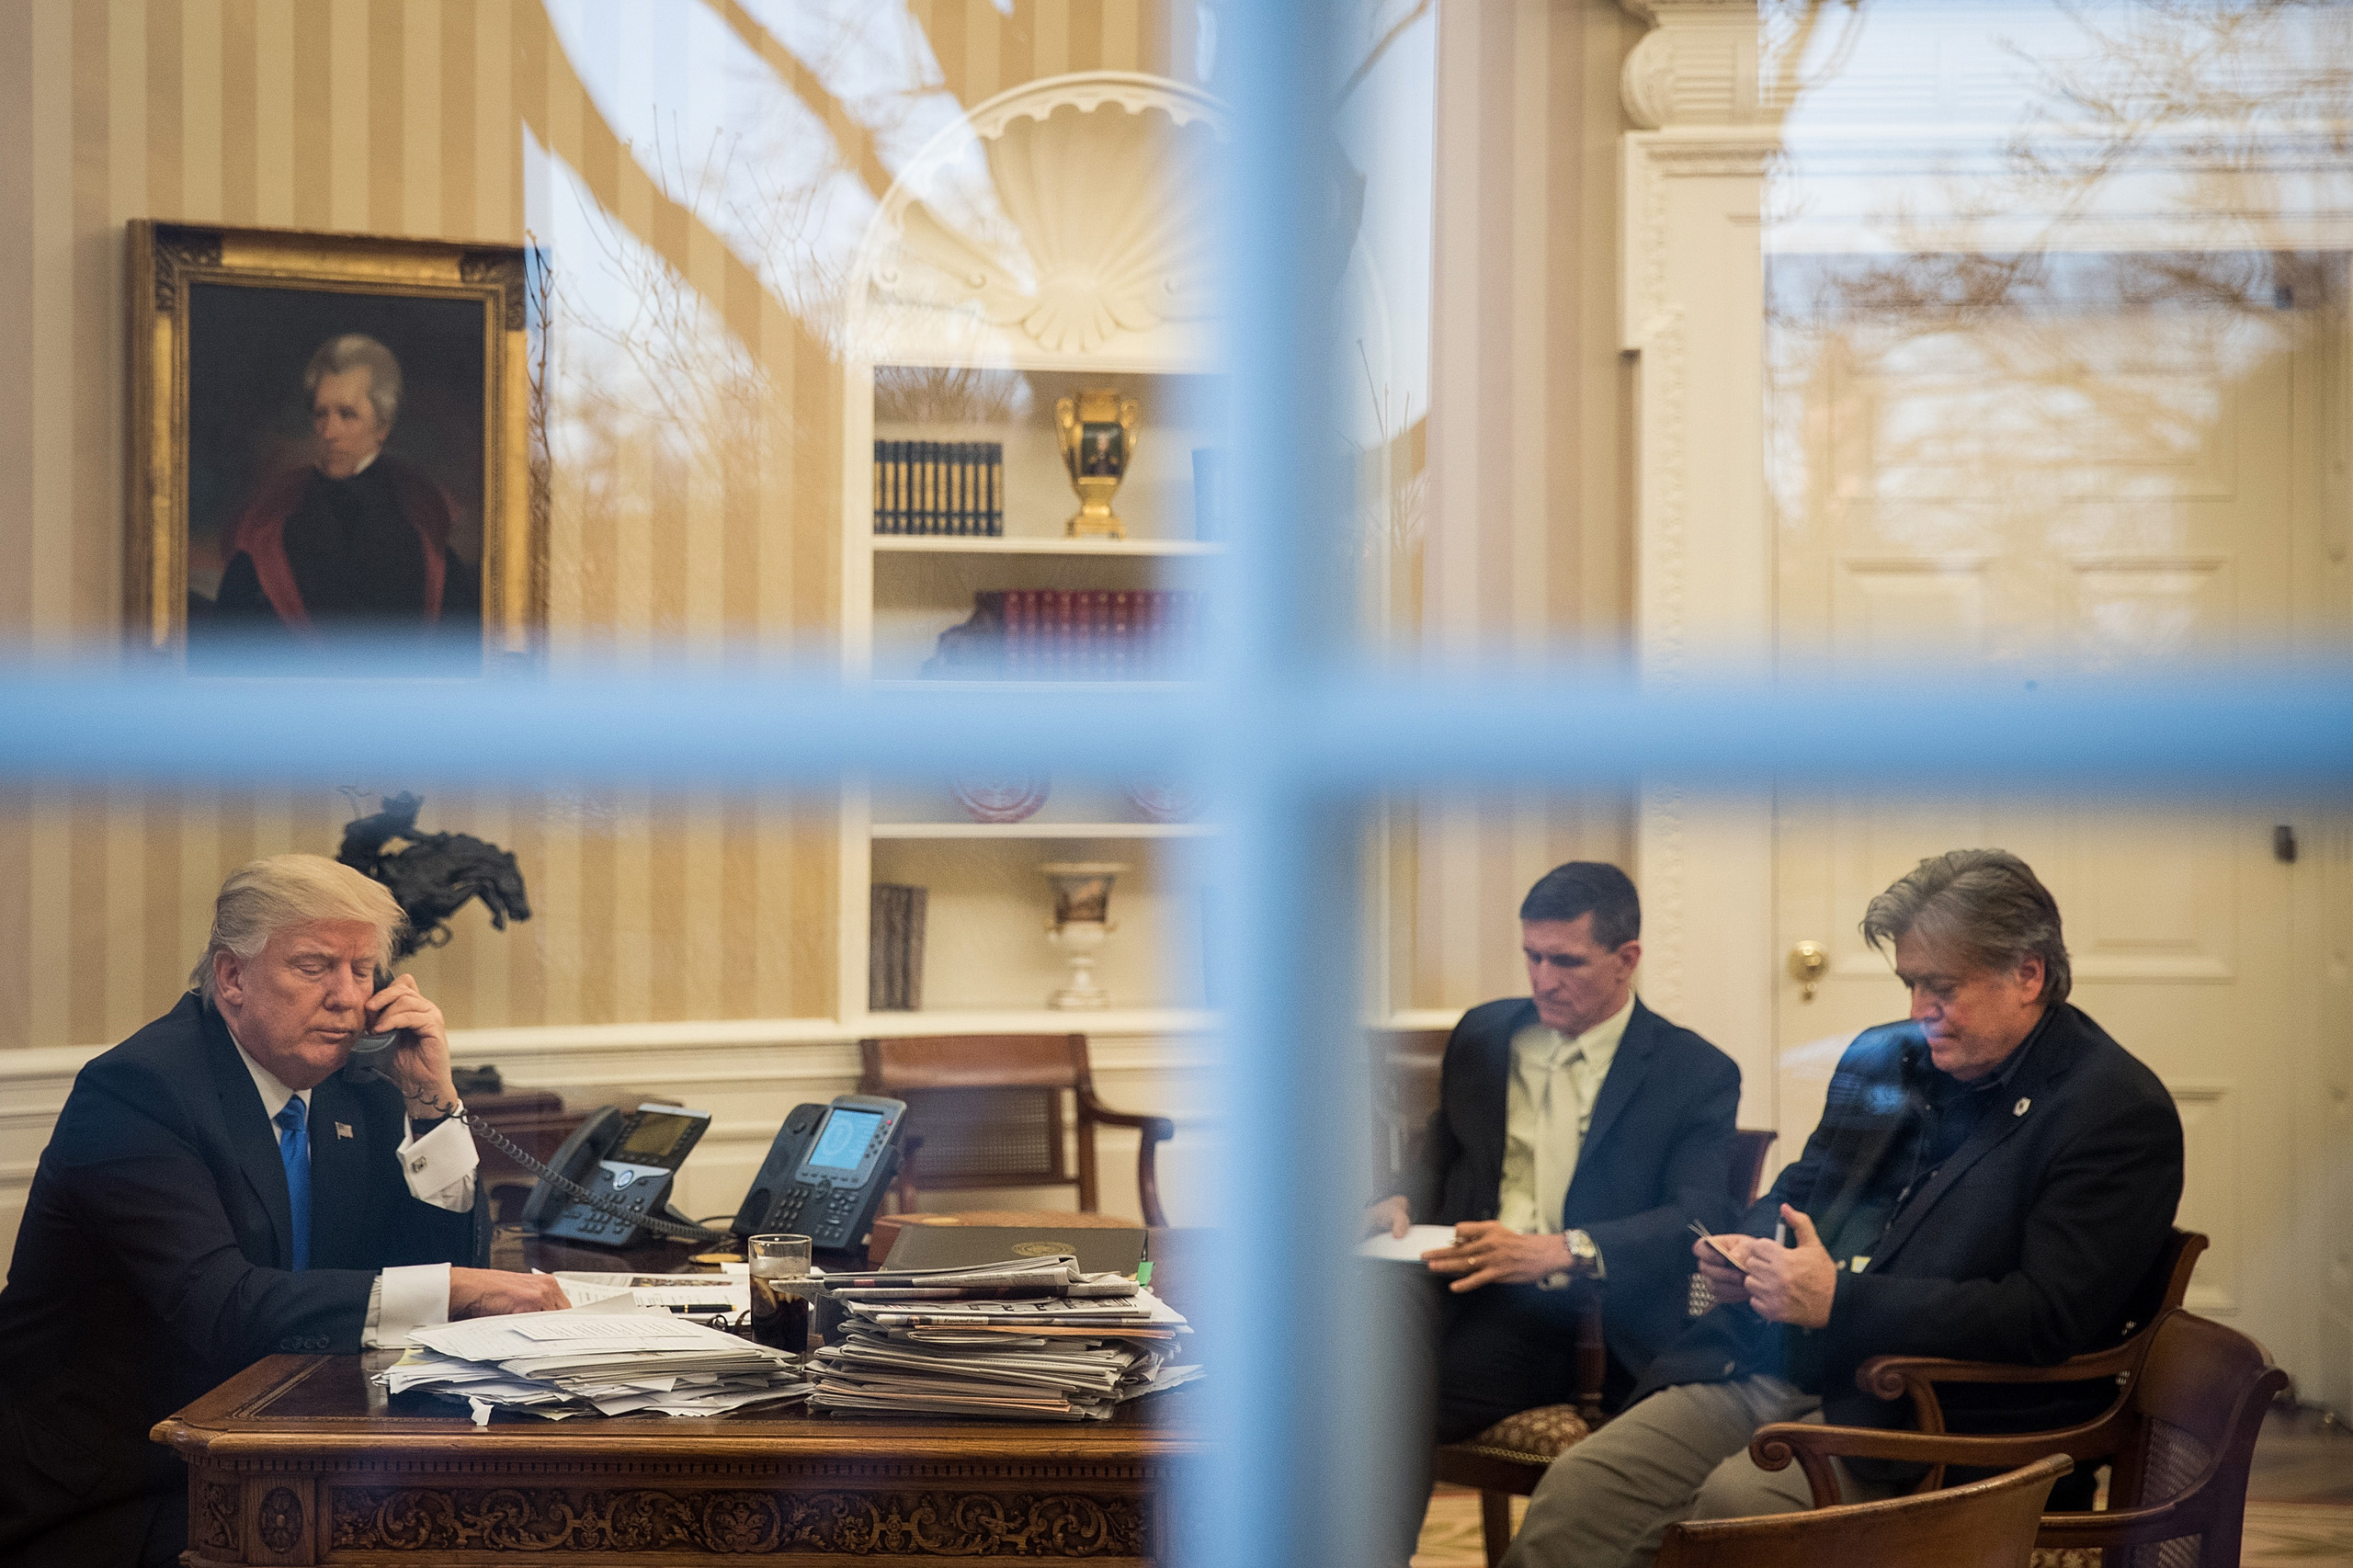 National security advisor Michael Flynn and White House chief strategist Steve Bannon in the Oval Office with President Trump while he speaks on the phone with Australian Prime Minister Malcolm Turnbull on Jan. 28, 2017.